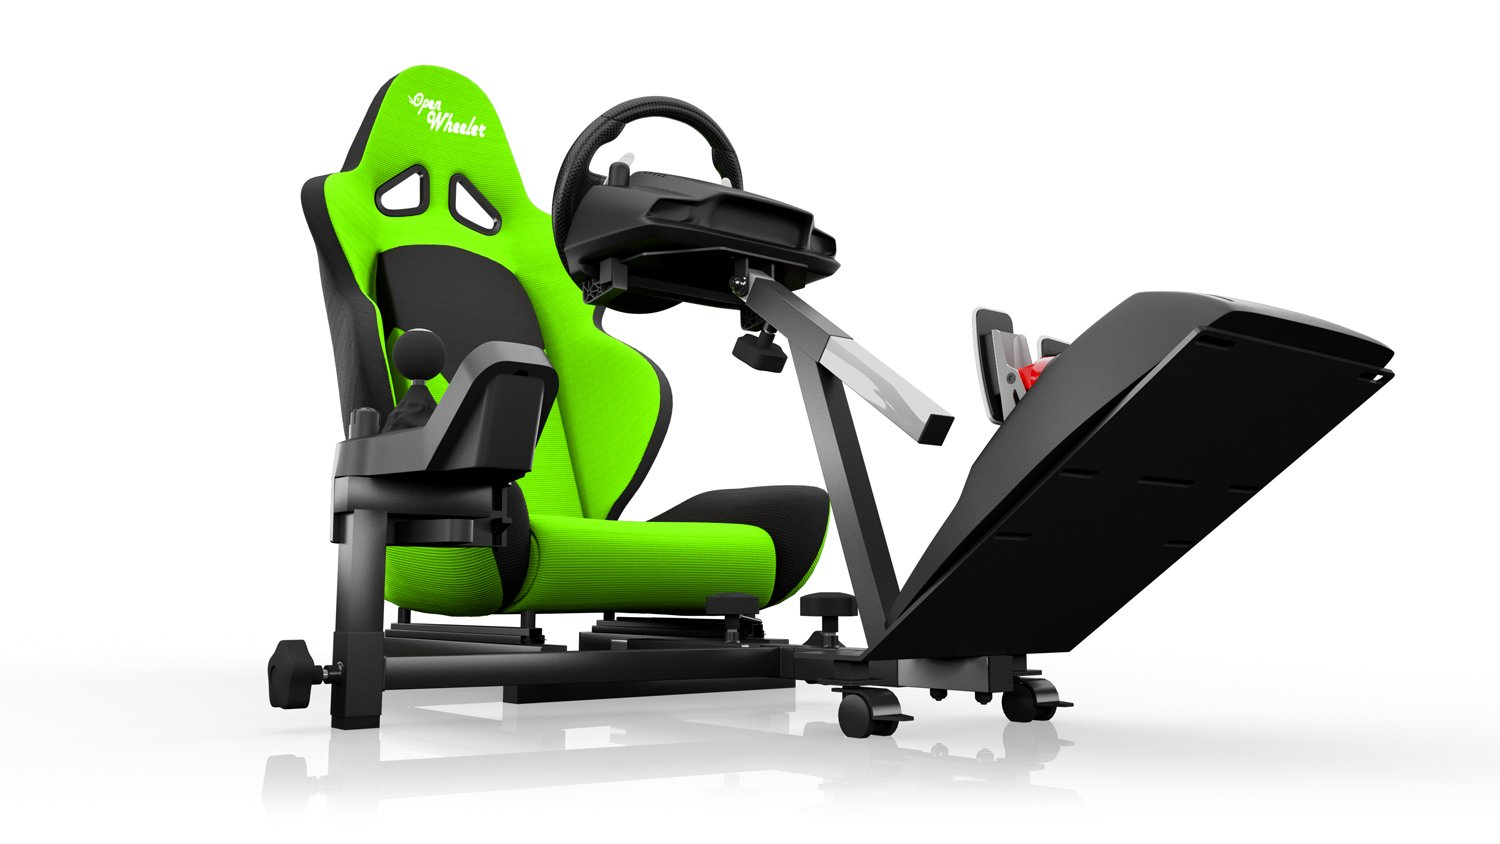 Best addons for the Logitech G920 Driving Force Xbox One Racing – Xbox Racing Chair